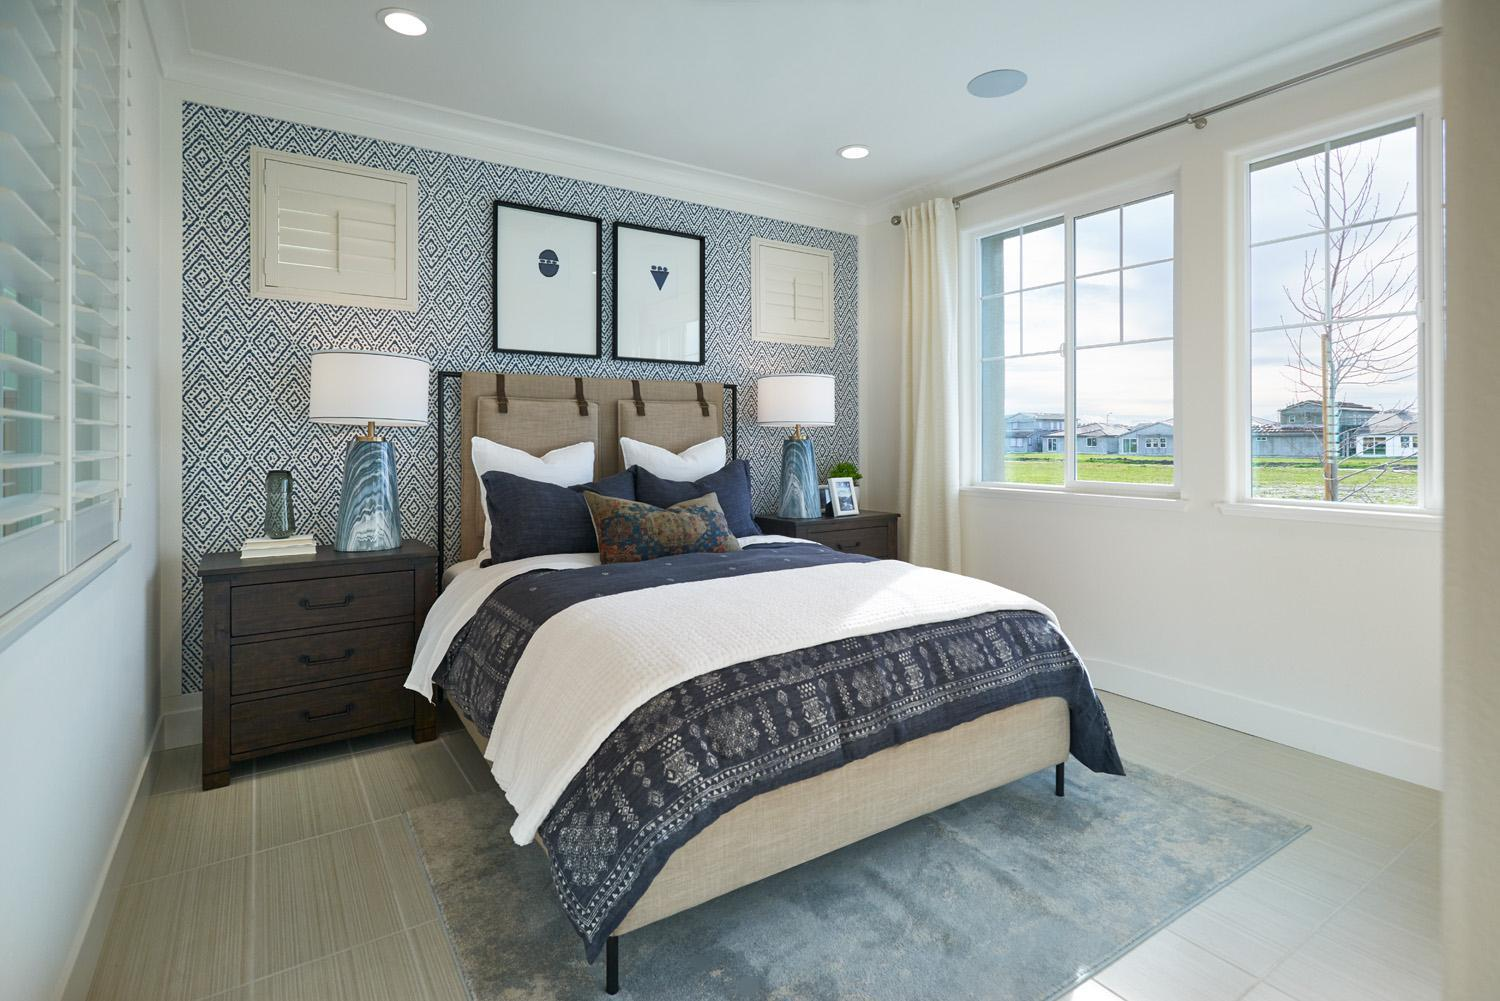 Bedroom featured in the Residence 4 By Signature Homes CA in Santa Rosa, CA